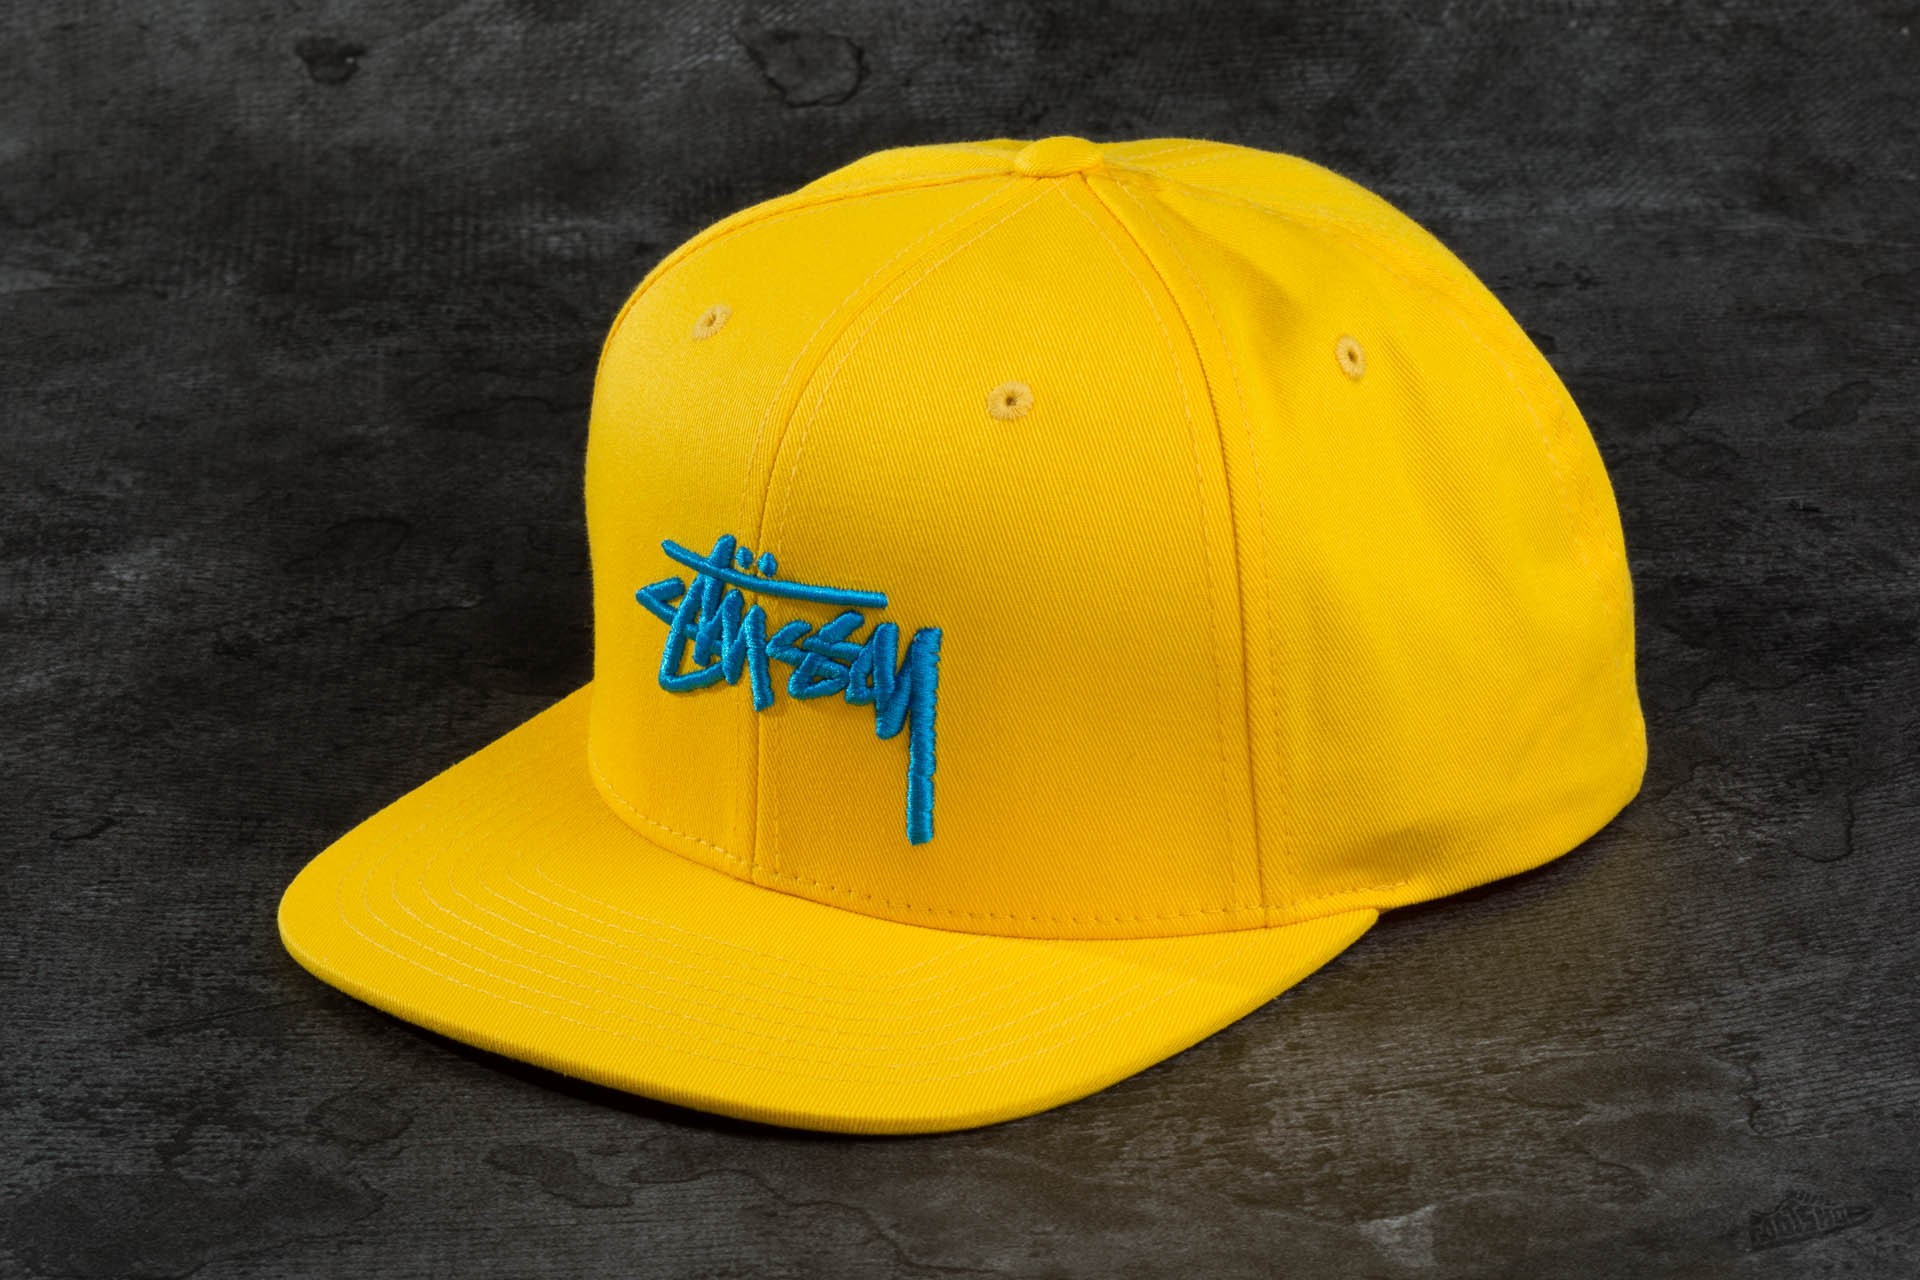 8546a02b12a Stüssy Stock SU16 Cap Yellow